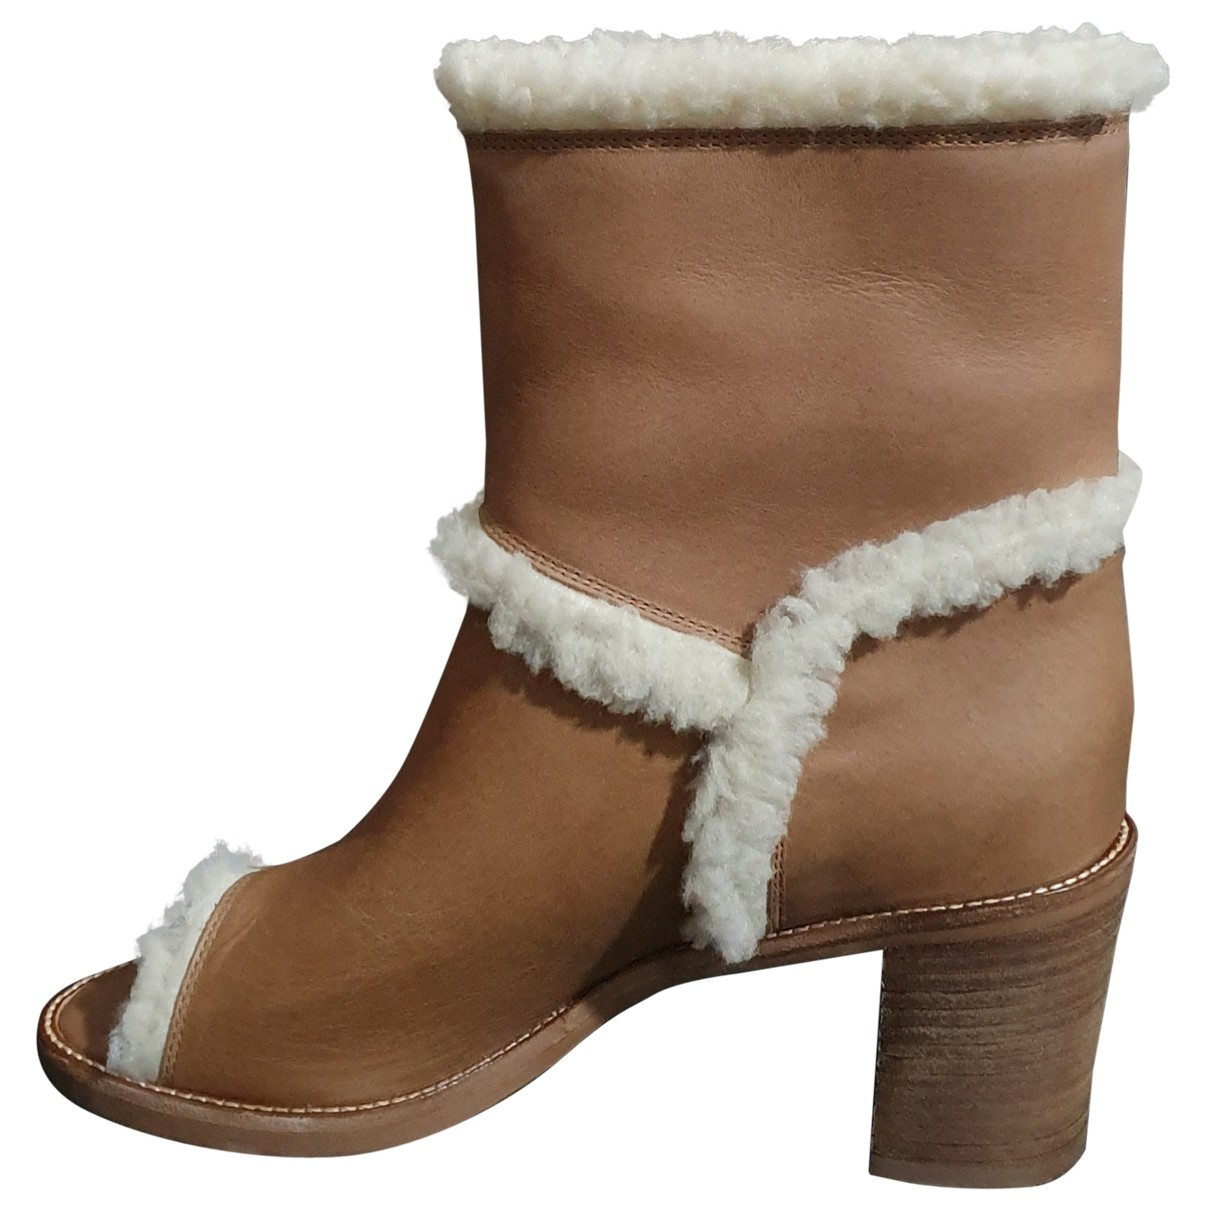 Mm6 \N Brown Leather Ankle boots for Women 36 EU